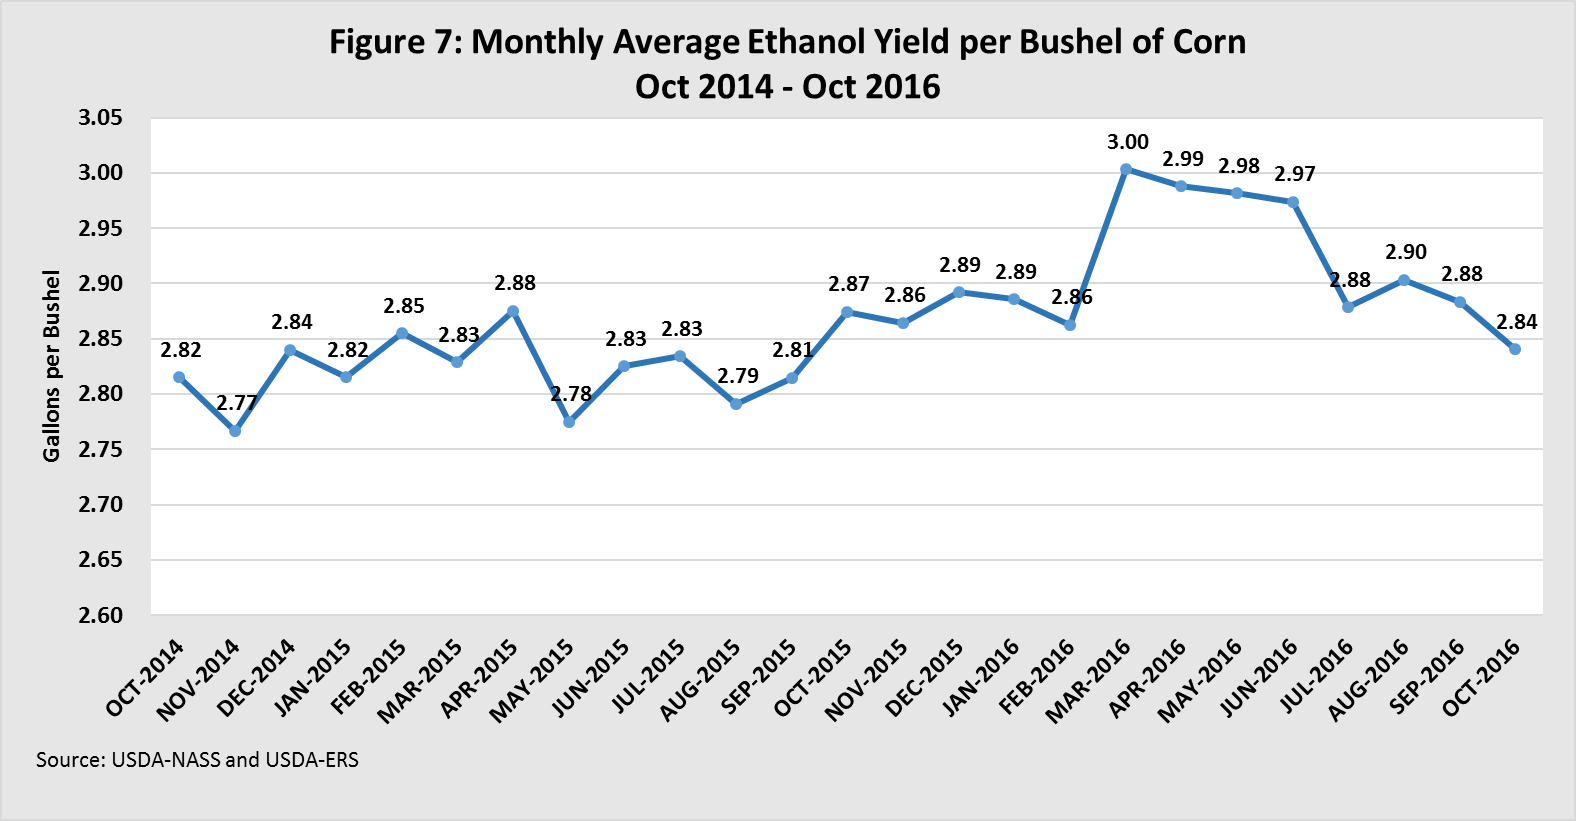 Monthly average ethanol yeild per bushel of corn